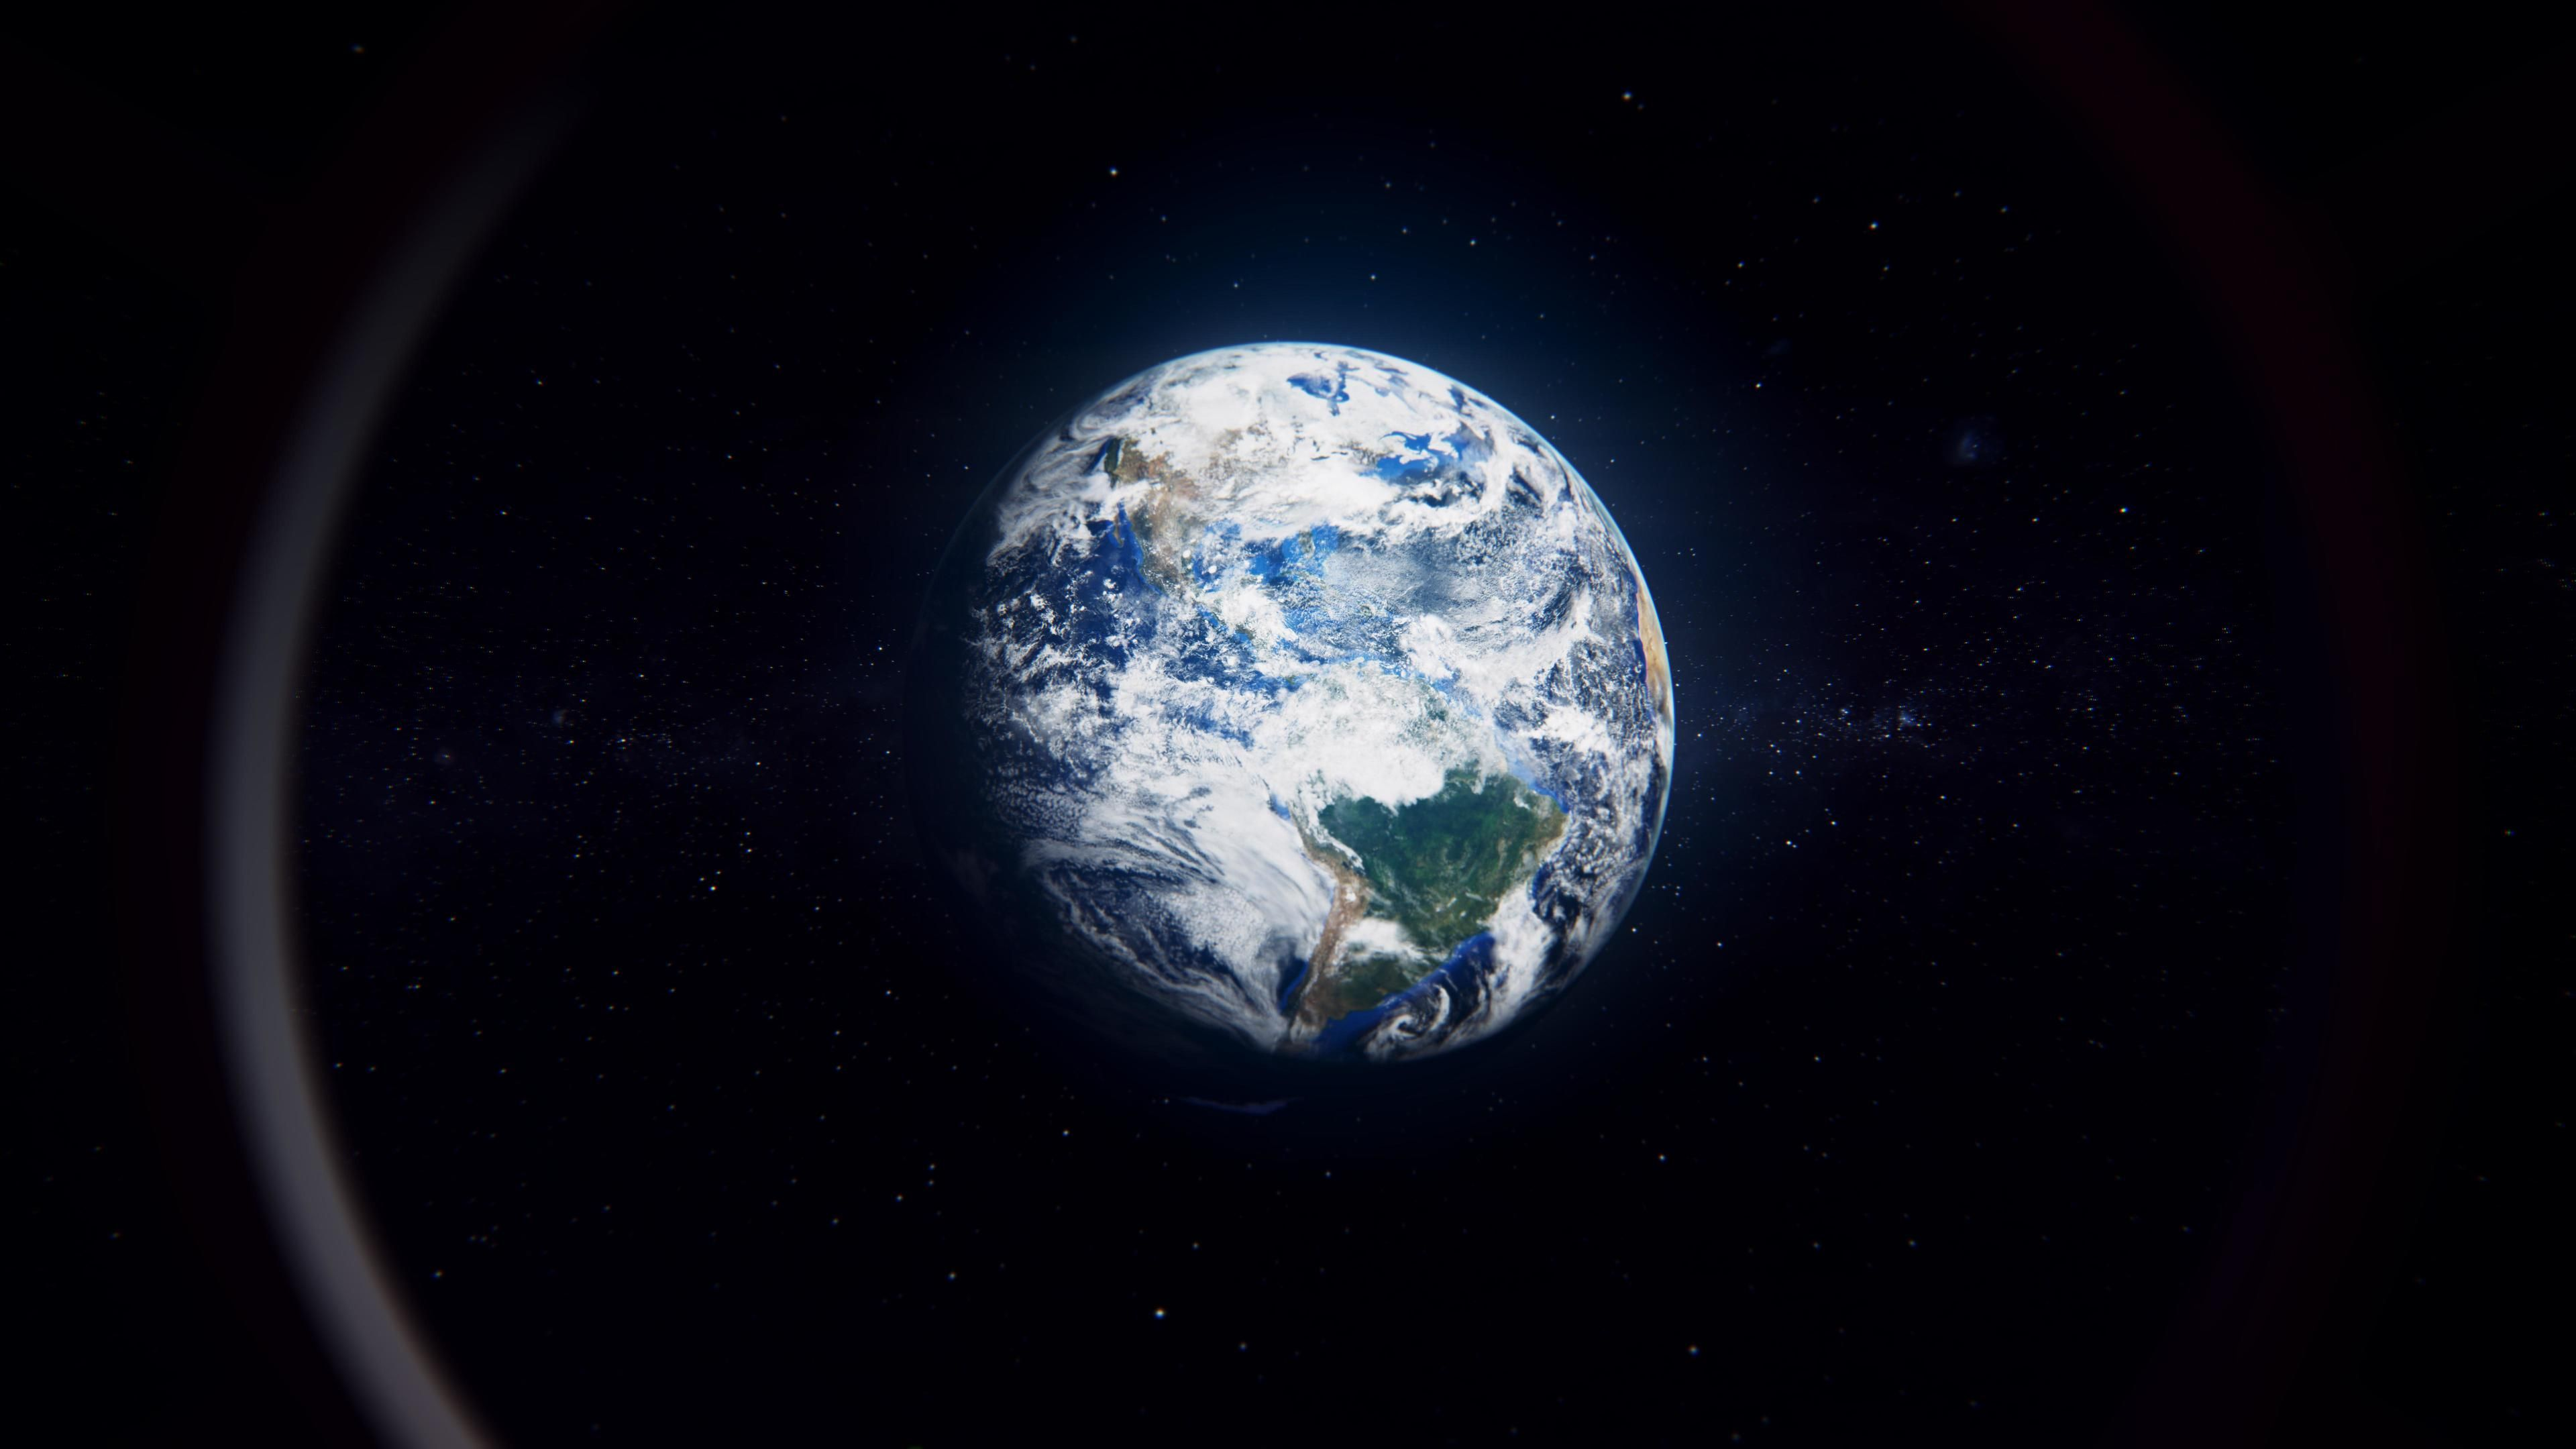 Earth View From Space 4k Space Wallpapers Hd Wallpapers Earth Wallpapers 8k Wallpapers 5k Wallpapers 4k W Earth View From Space Wallpaper Earth Earth View